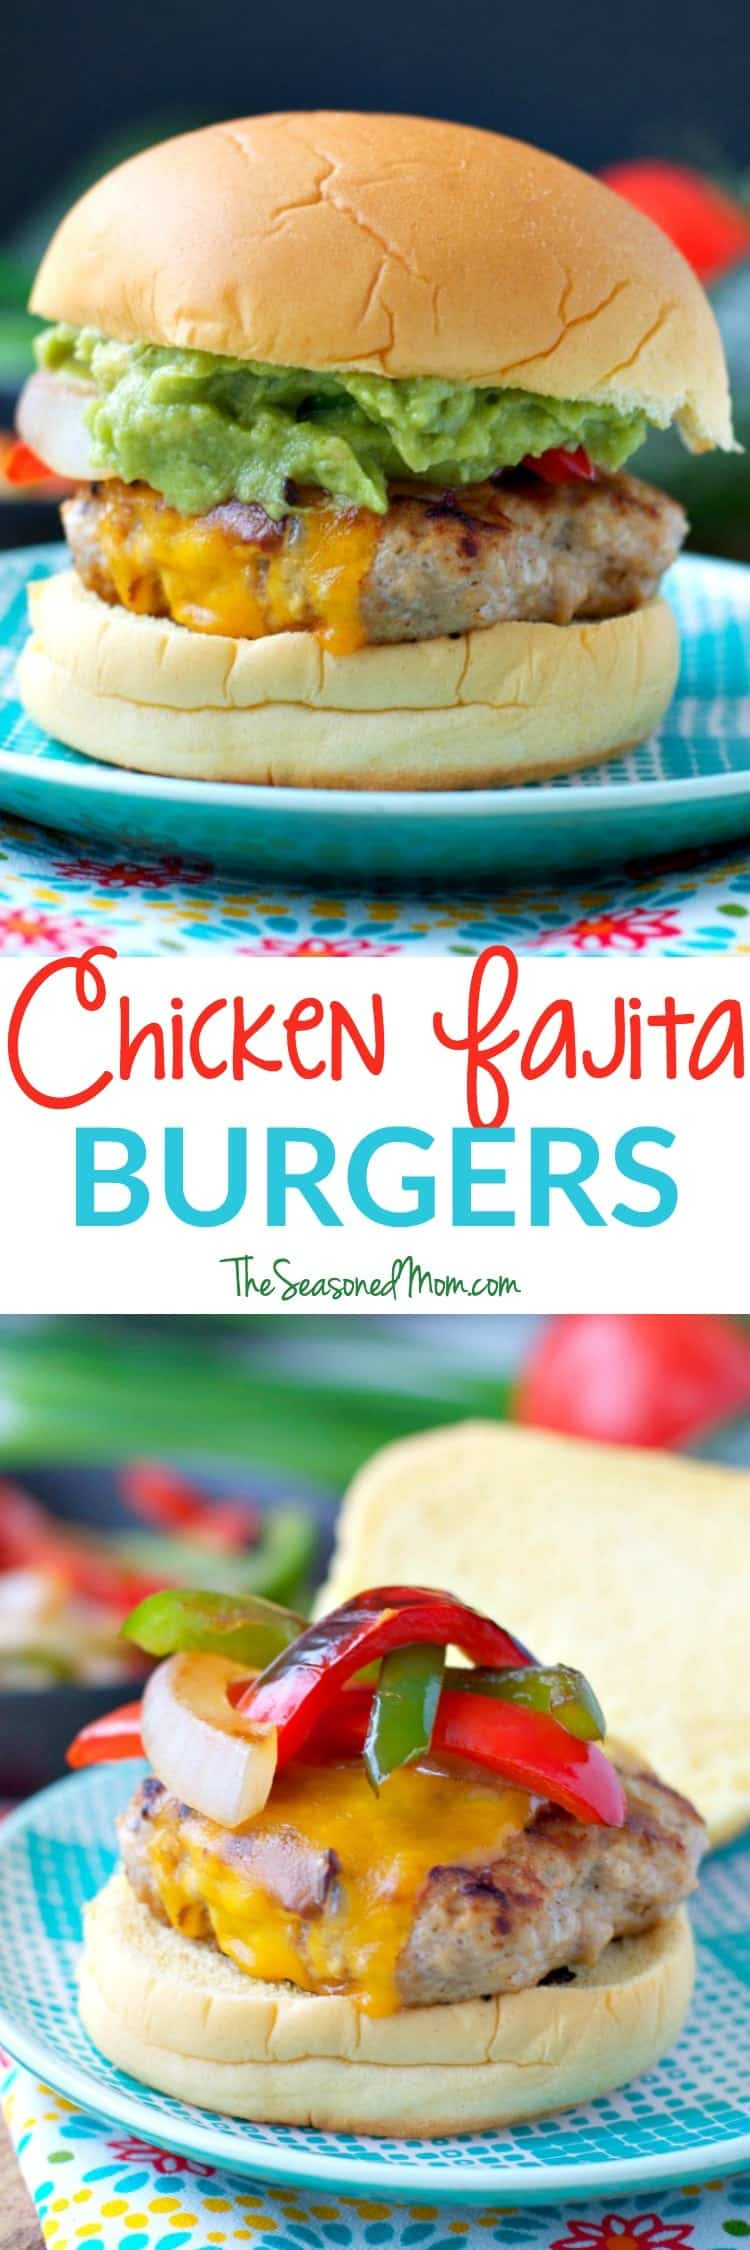 ... Fajita Burgers are an easy, family-friendly dinner that's ready in